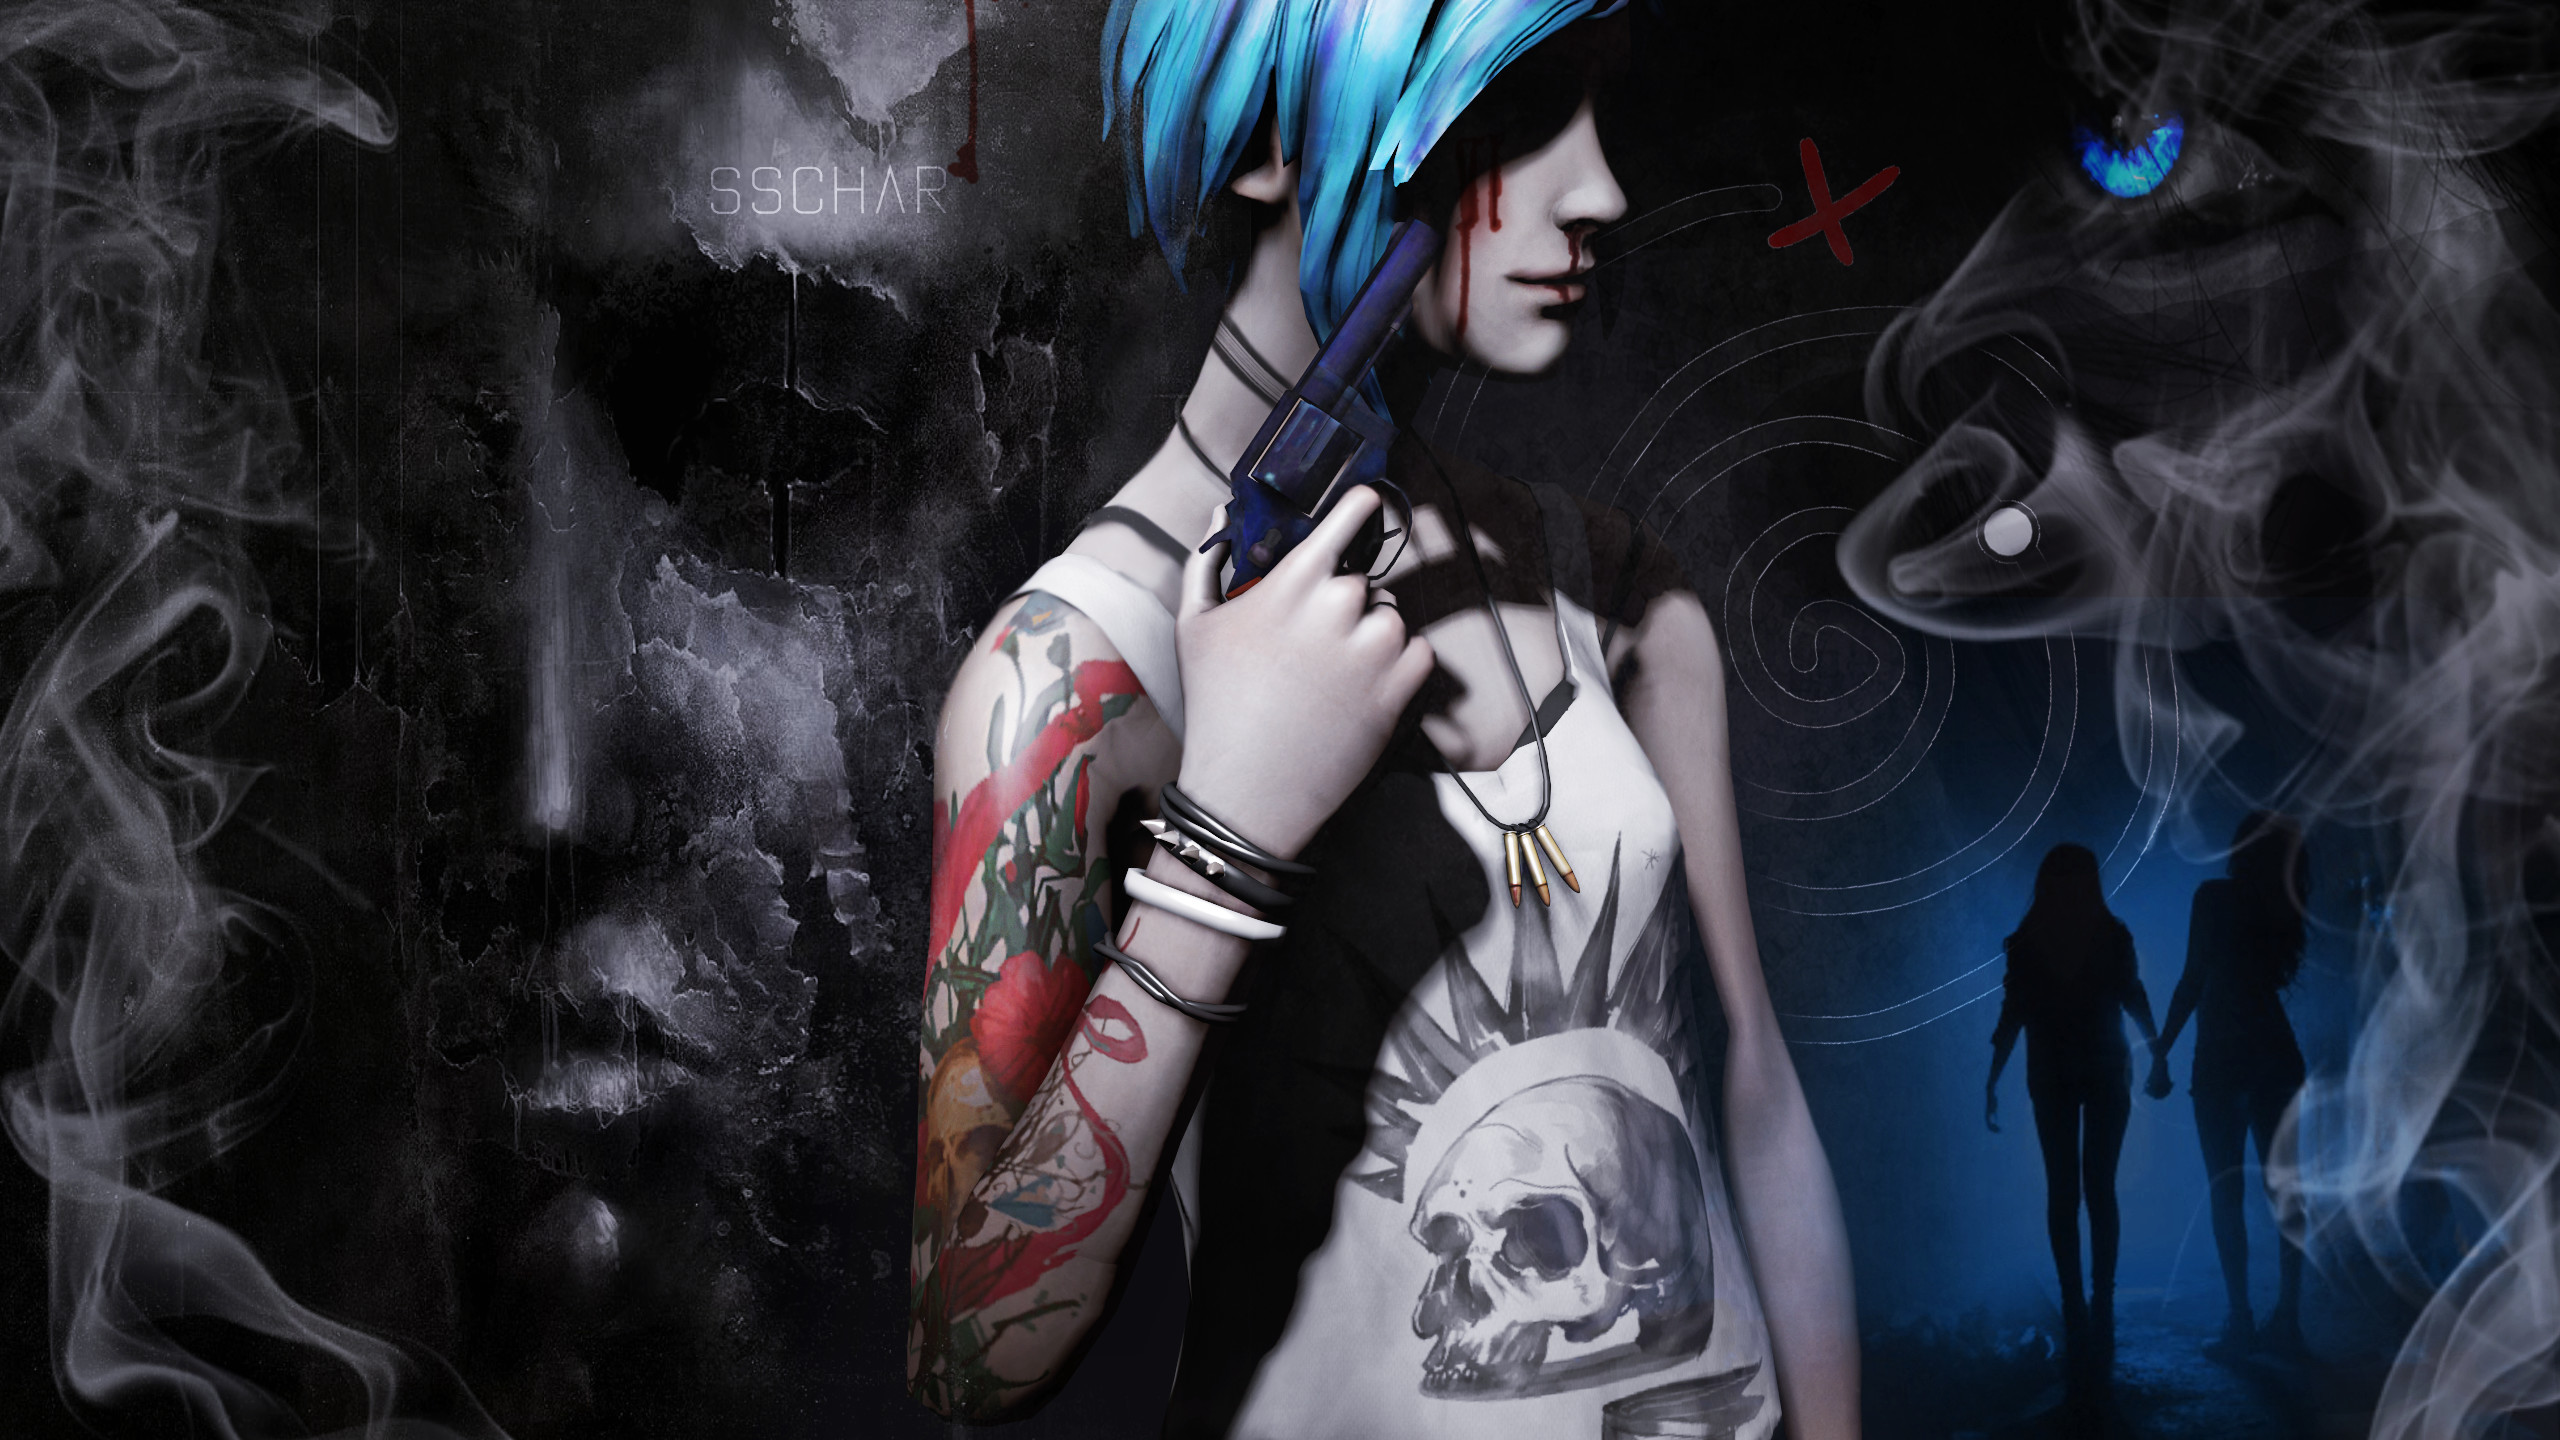 Res: 2560x1440, ... Life Is Strange - Chloe Price Wallpaper 1 by SSchar